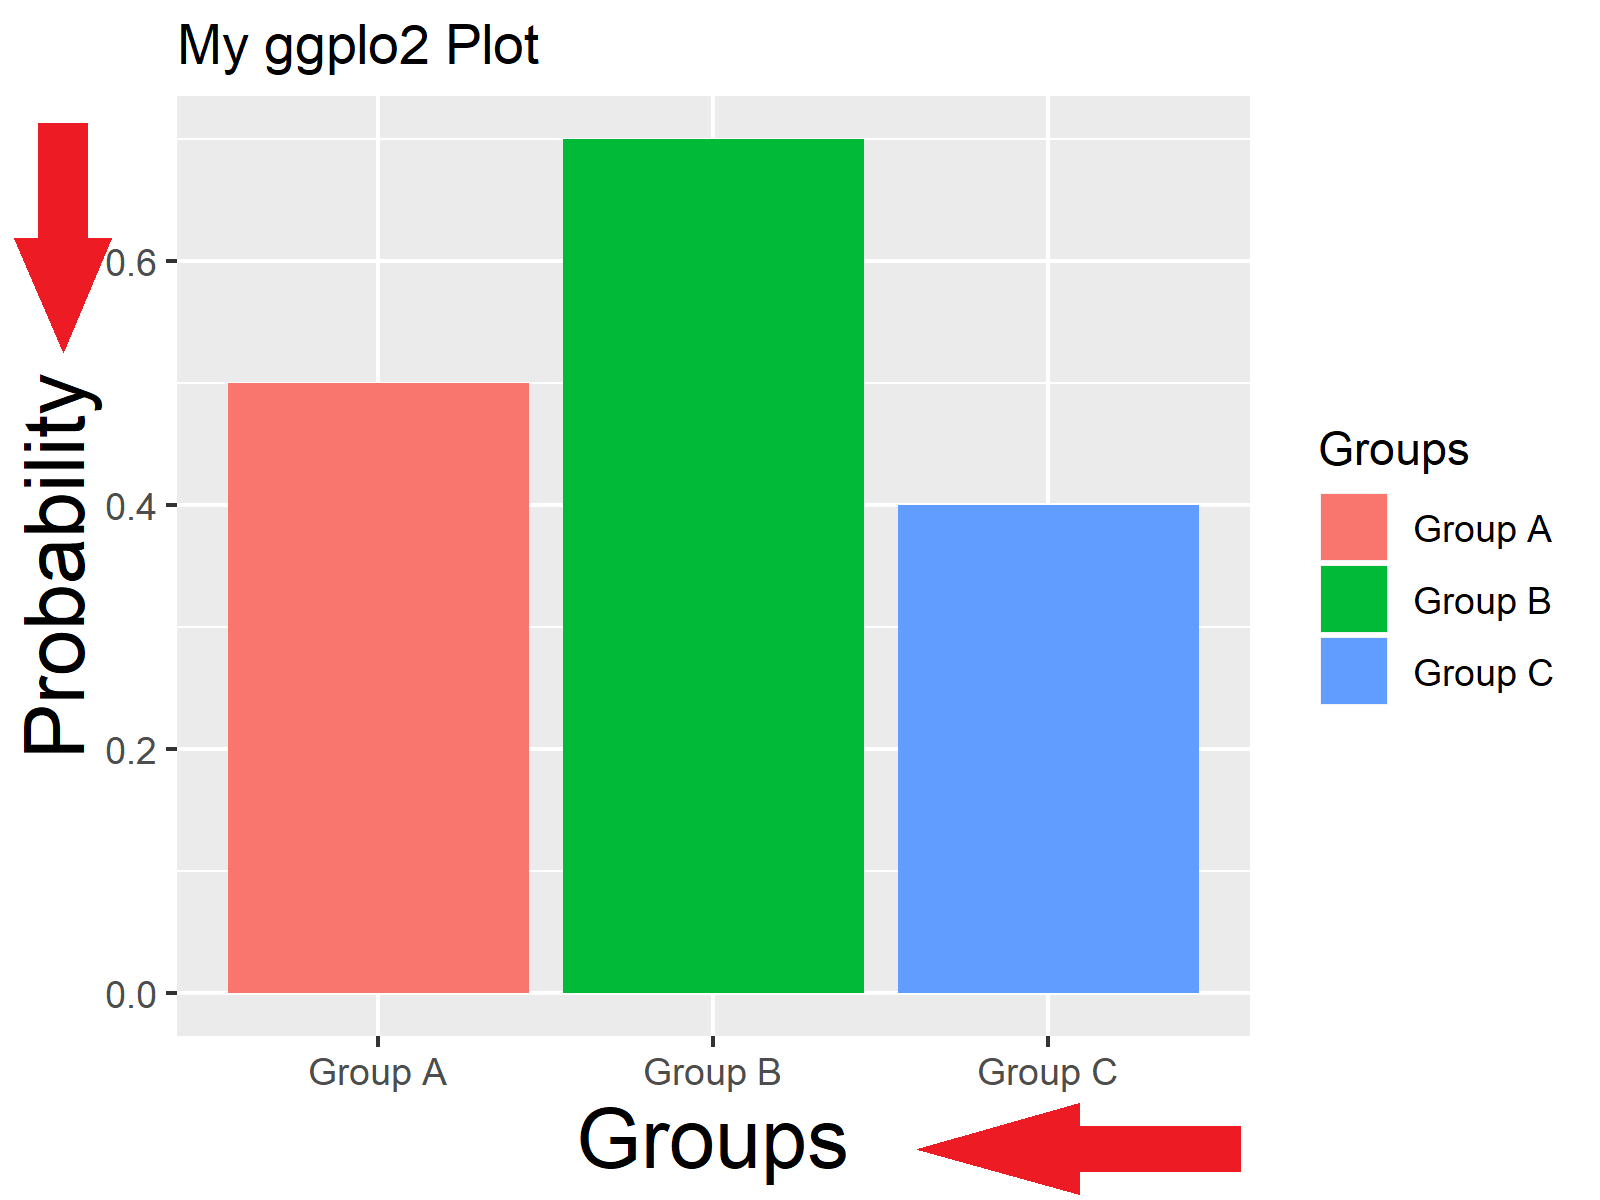 r ggplot2 plot font size of axis titles